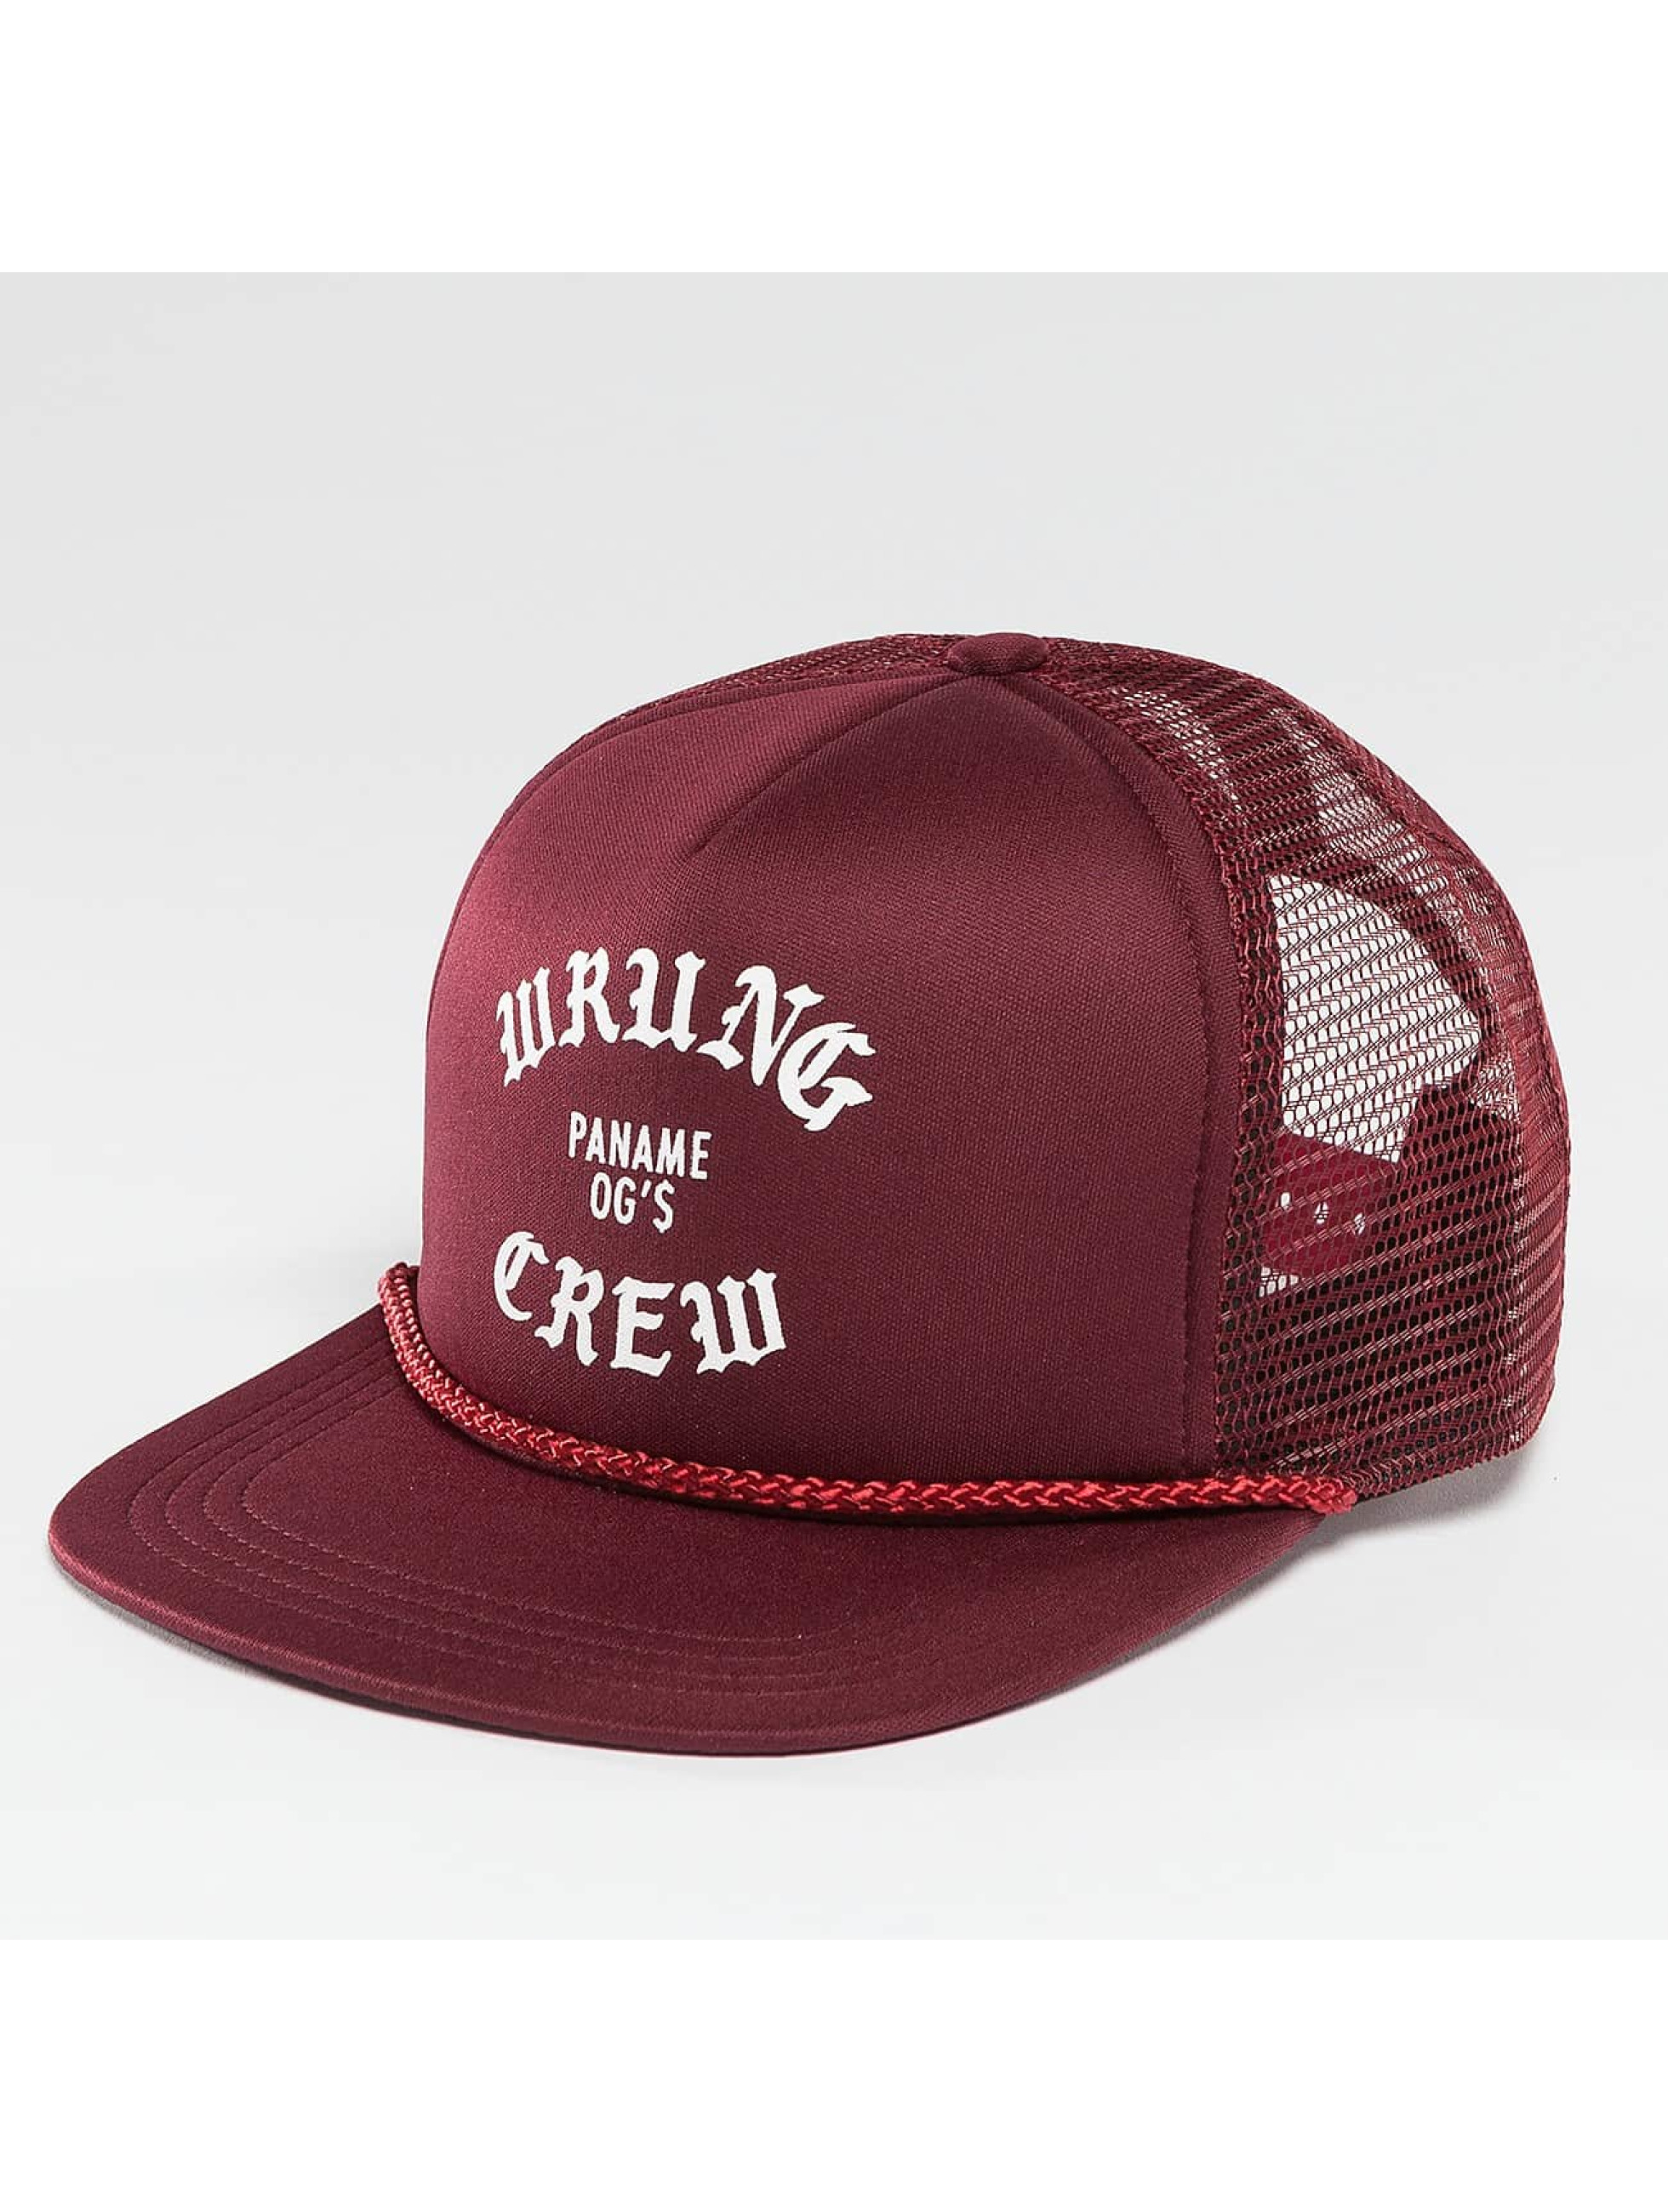 Wrung Division Trucker Caps Crew red